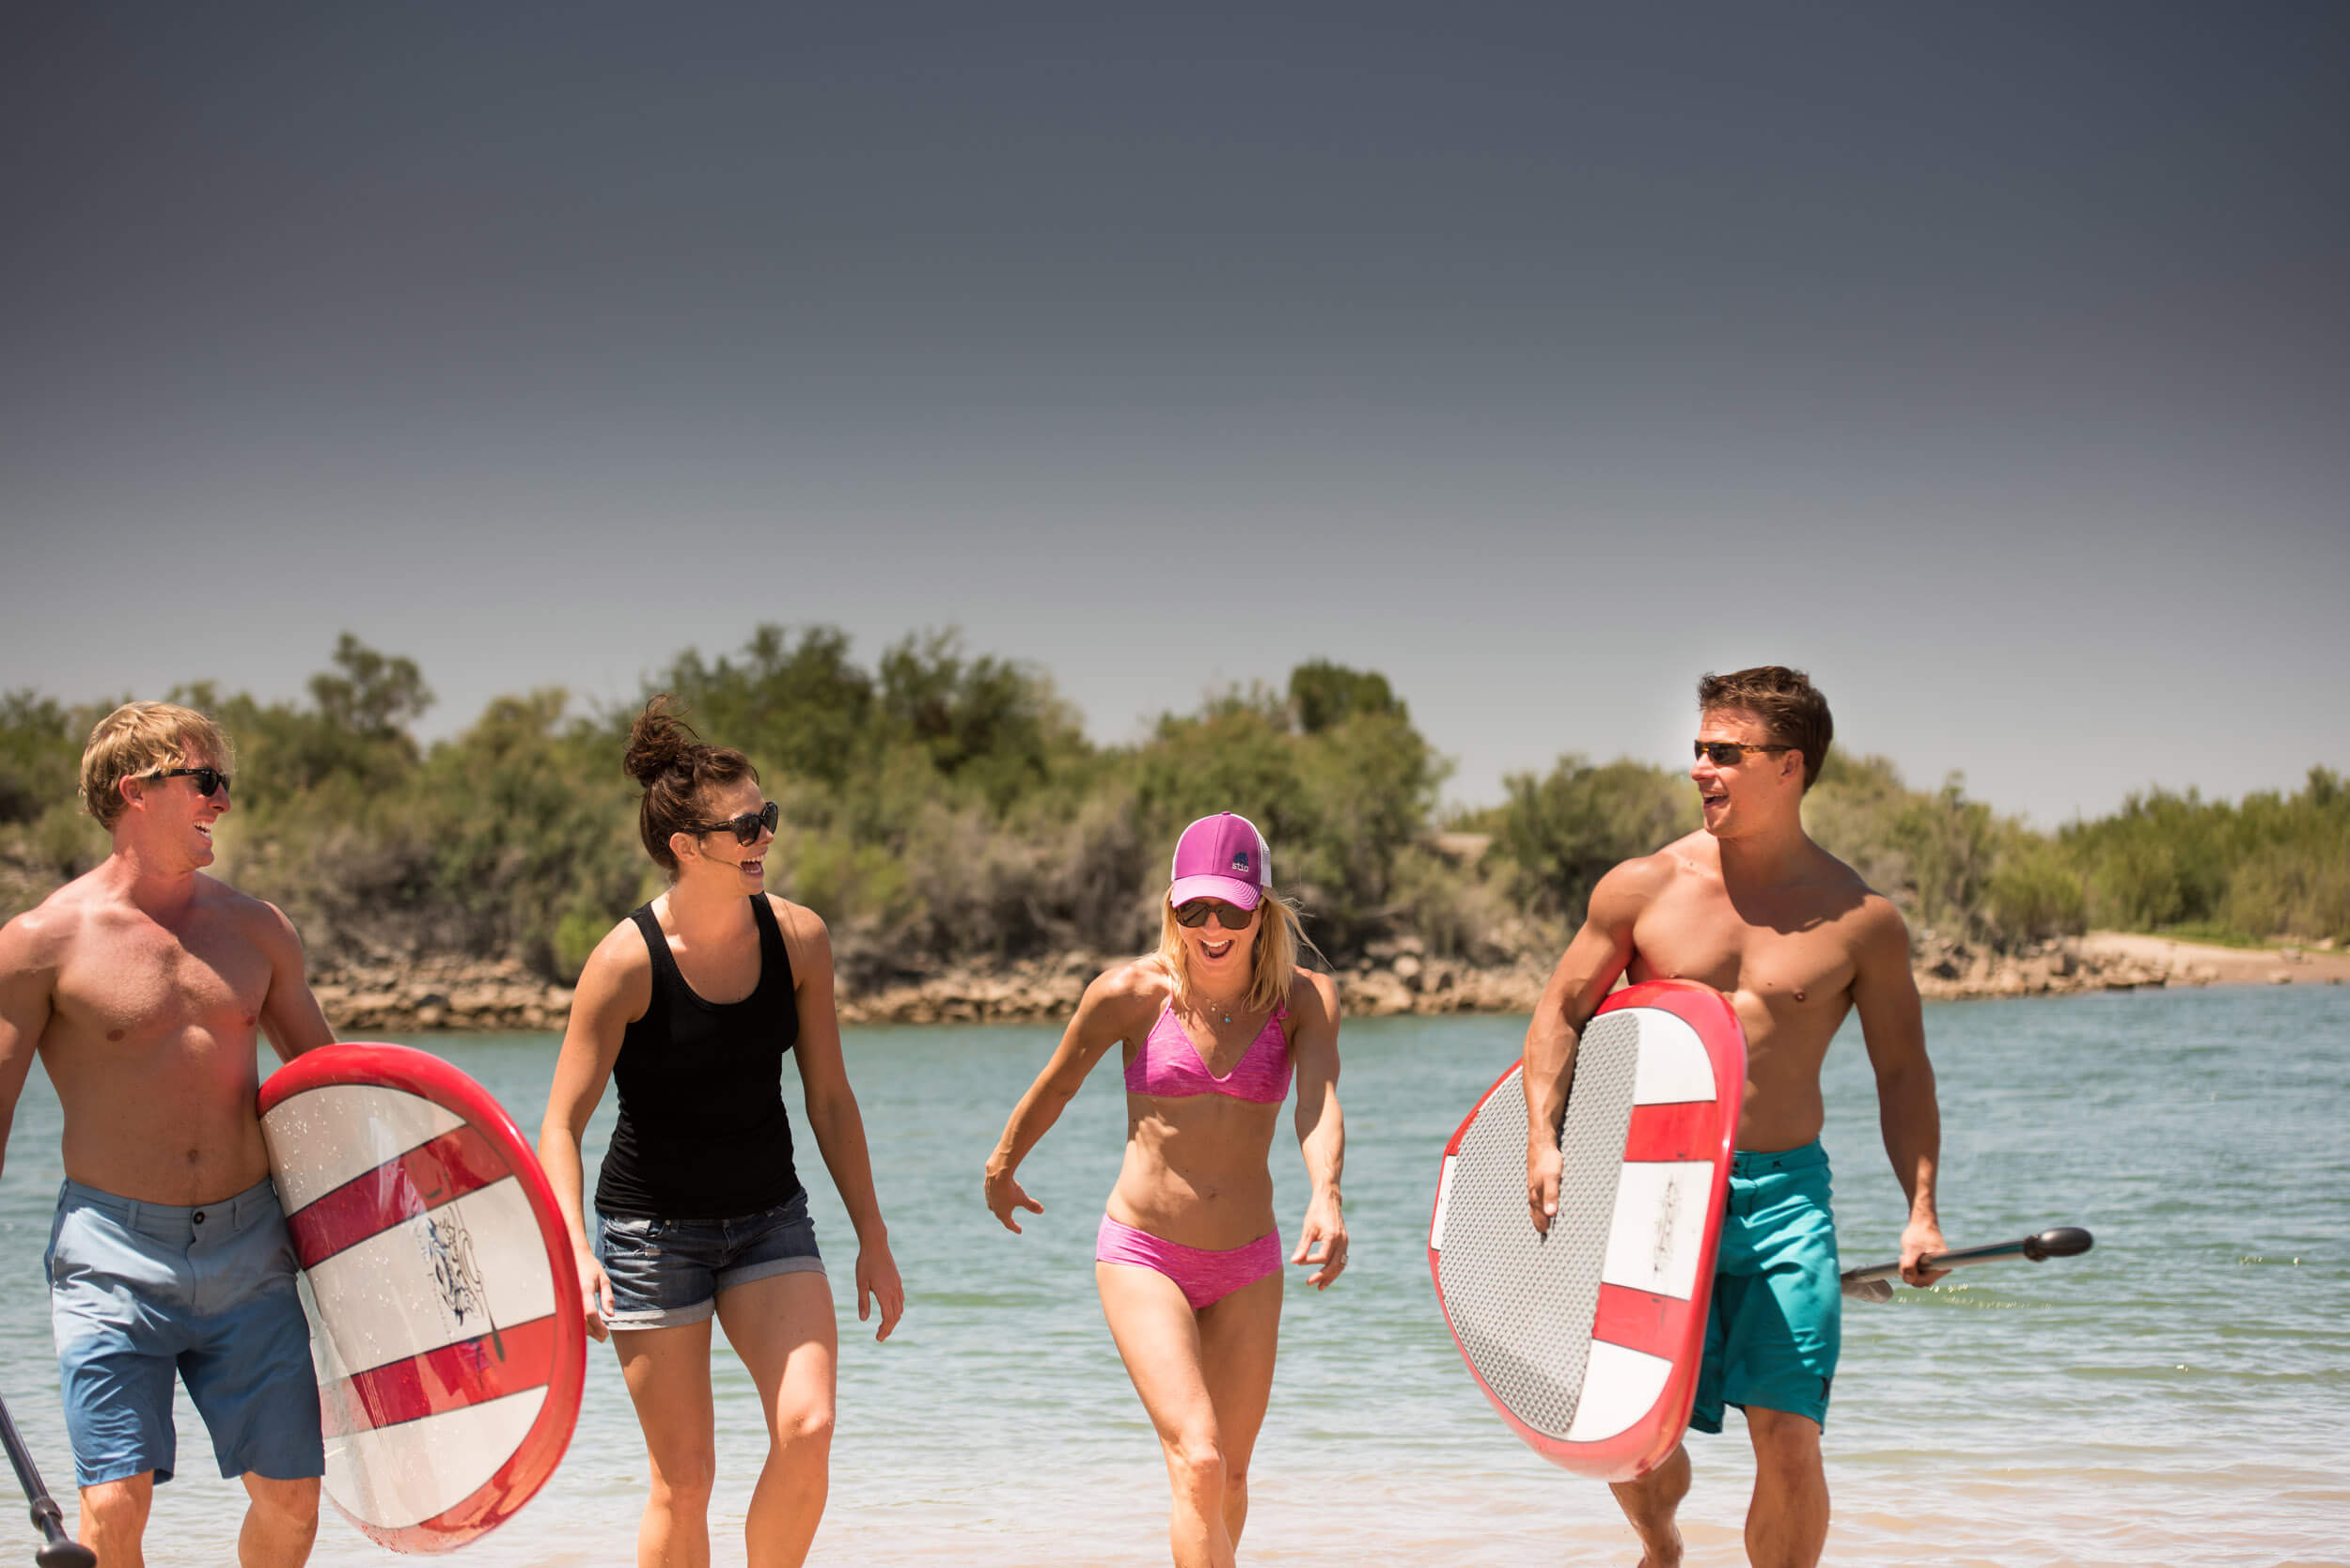 What You'll Need - Bring your own inner tubes, pick one up from a local store in Blythe or buy one from the Arizona Oasis front desk.Looking for an extra arm workout? Launch a kayak instead of a tube!Bring a paddle, or just relax as the current carries you.